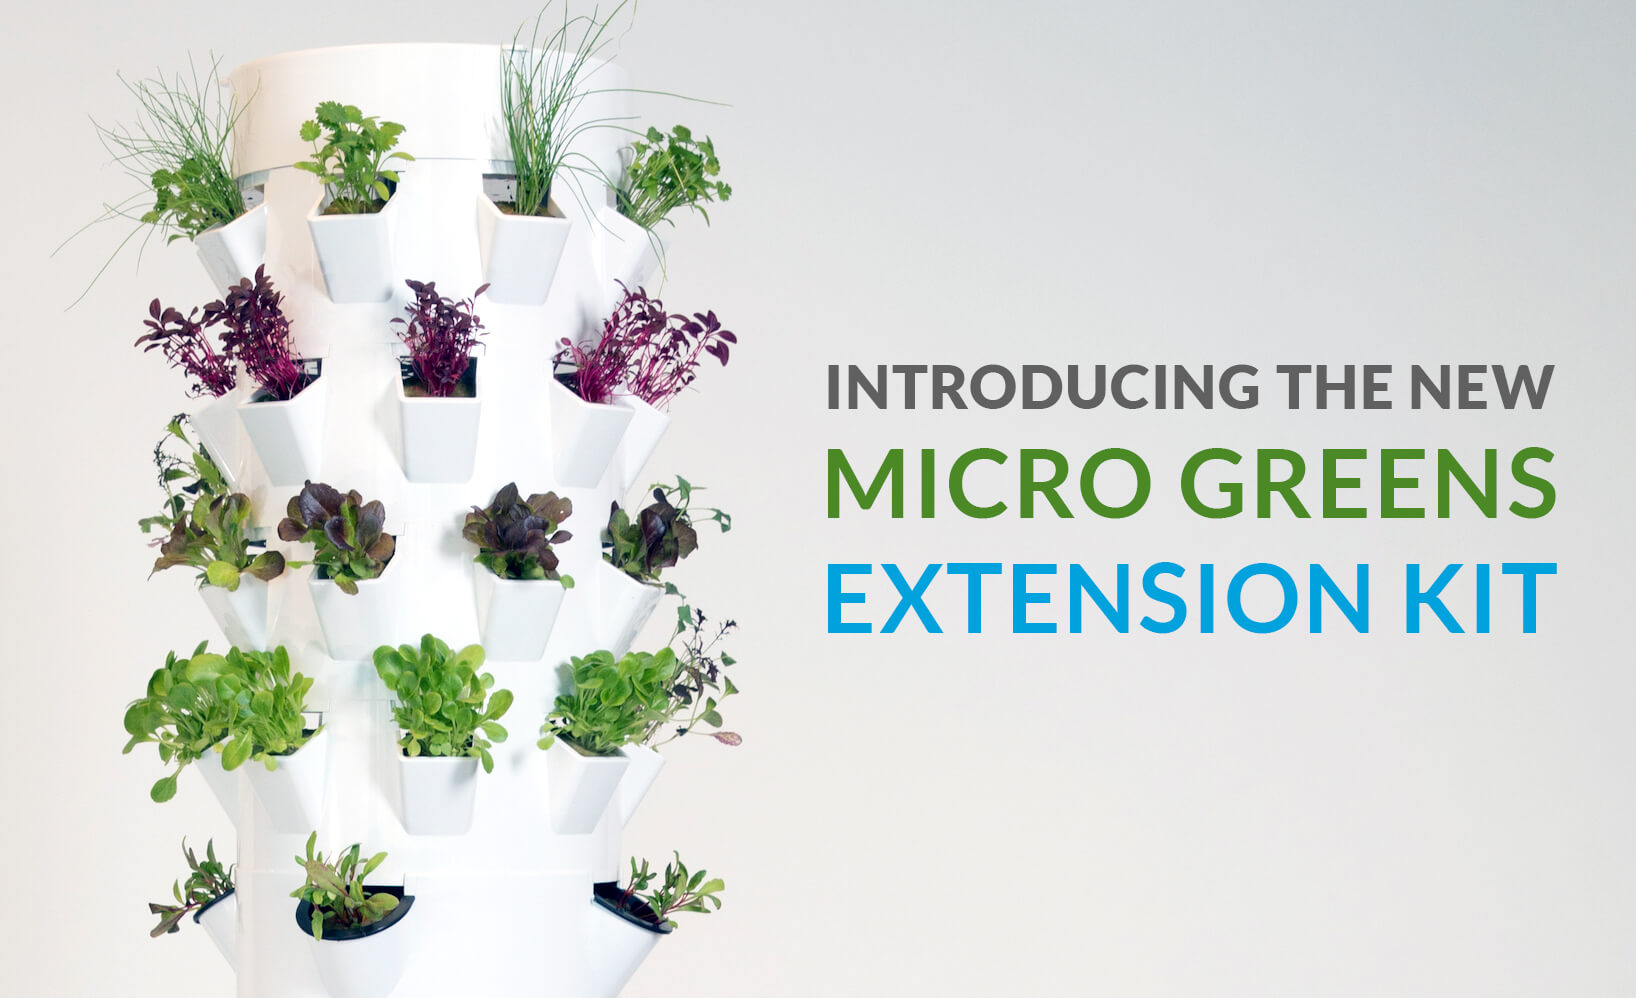 Microgreens-Growing-Microgreens